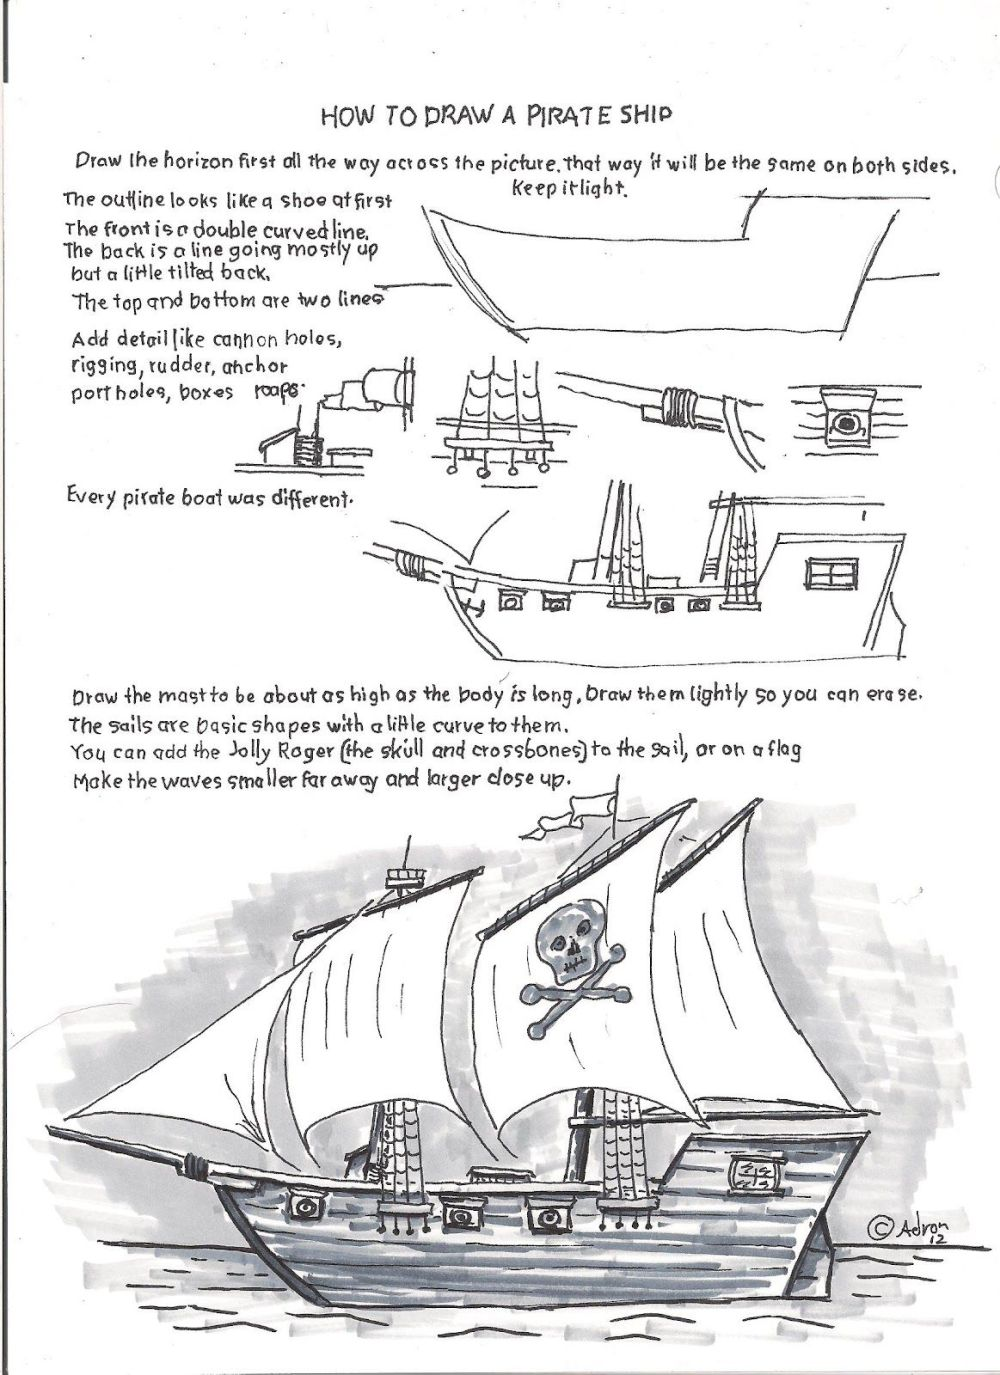 medium resolution of how to draw worksheets for young artist how to draw a pirate ship schooner ship diagram easy pirate ship diagram